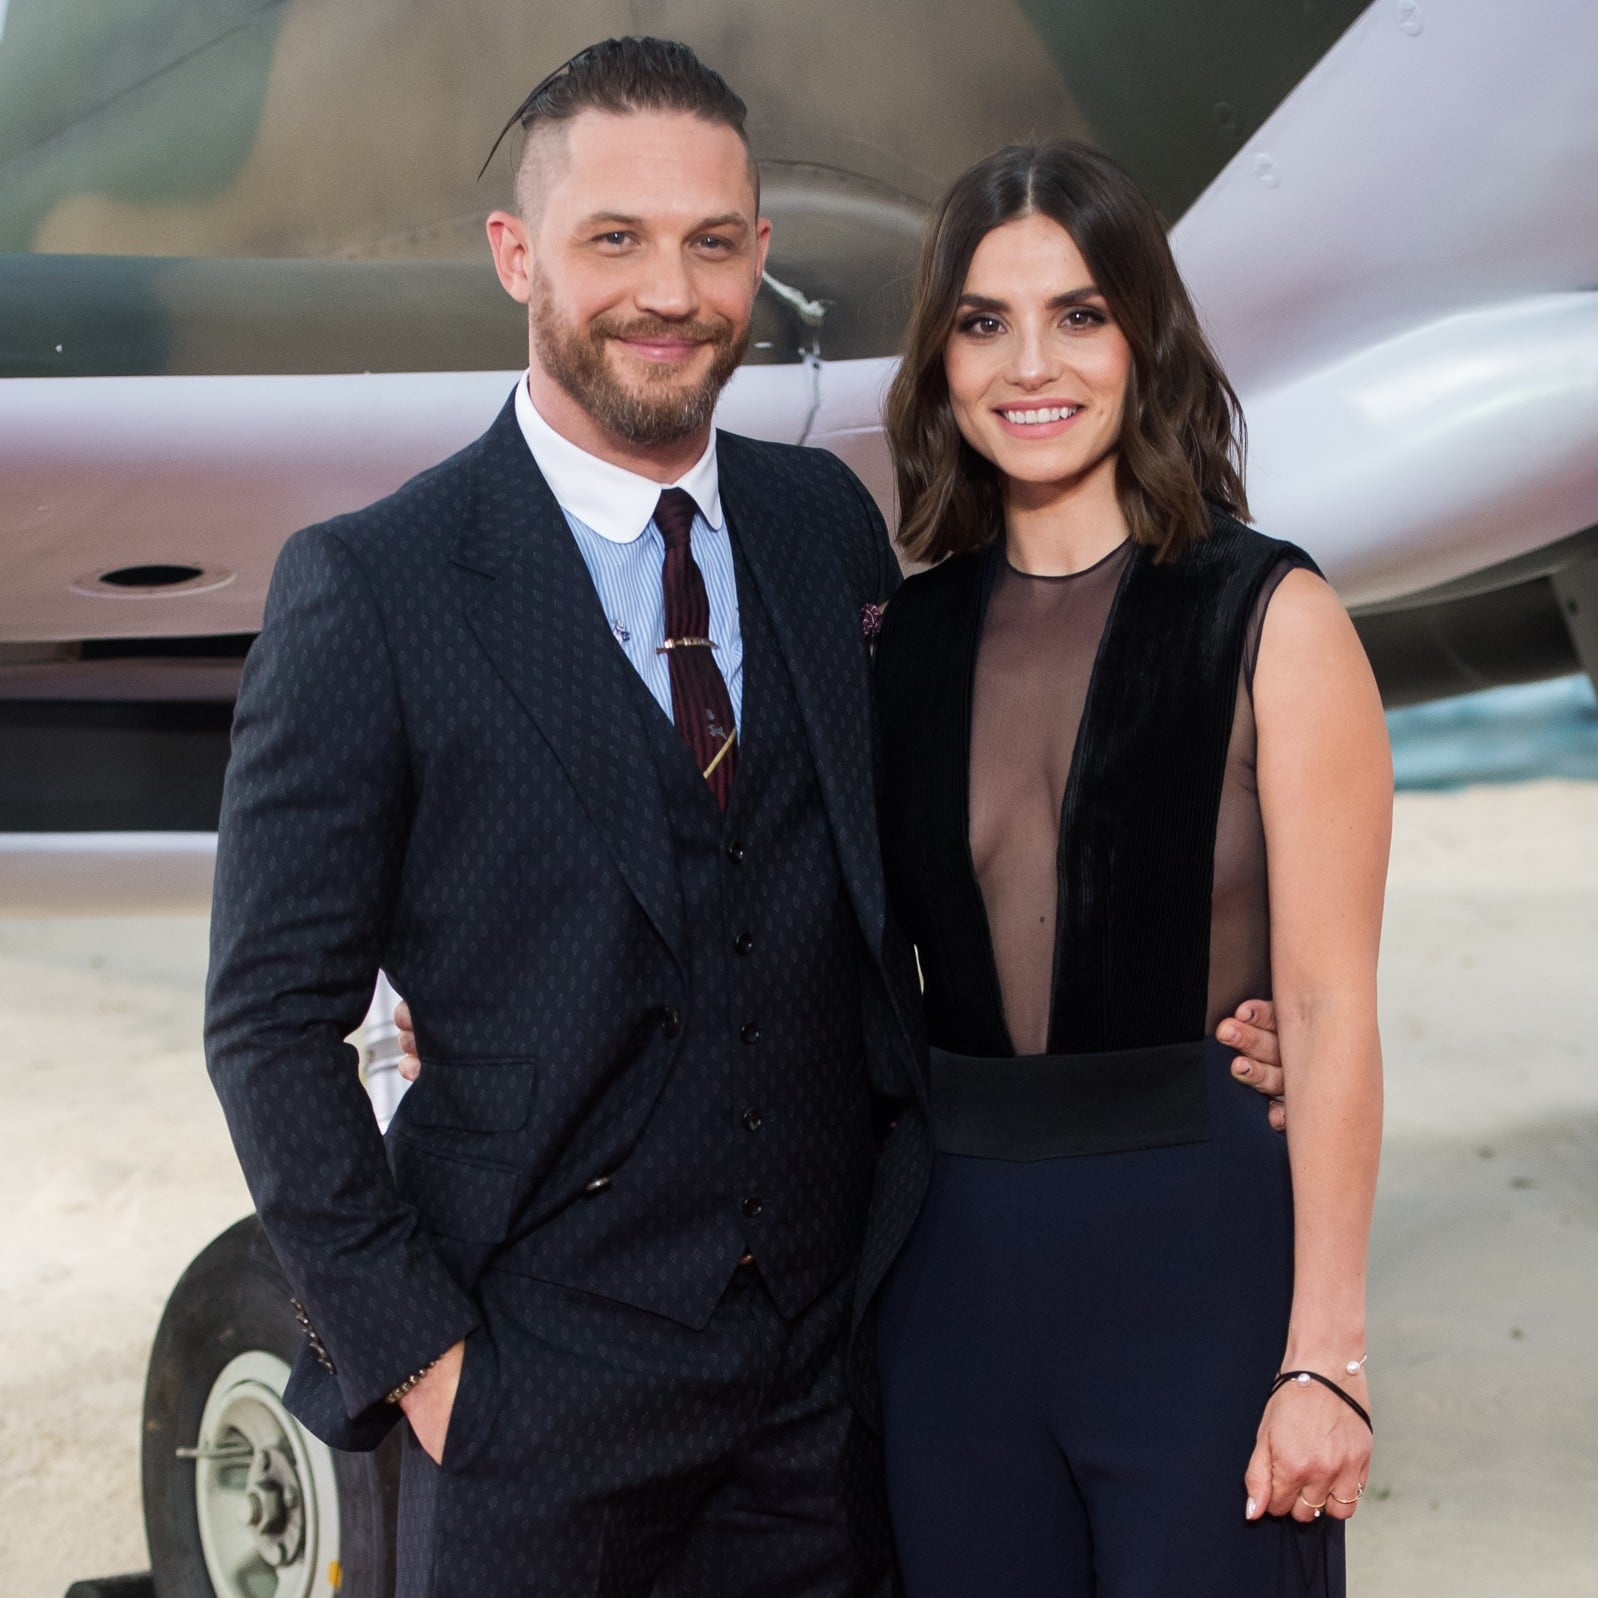 Who Is Tom Hardy's Wife? | POPSUGAR Celebrity